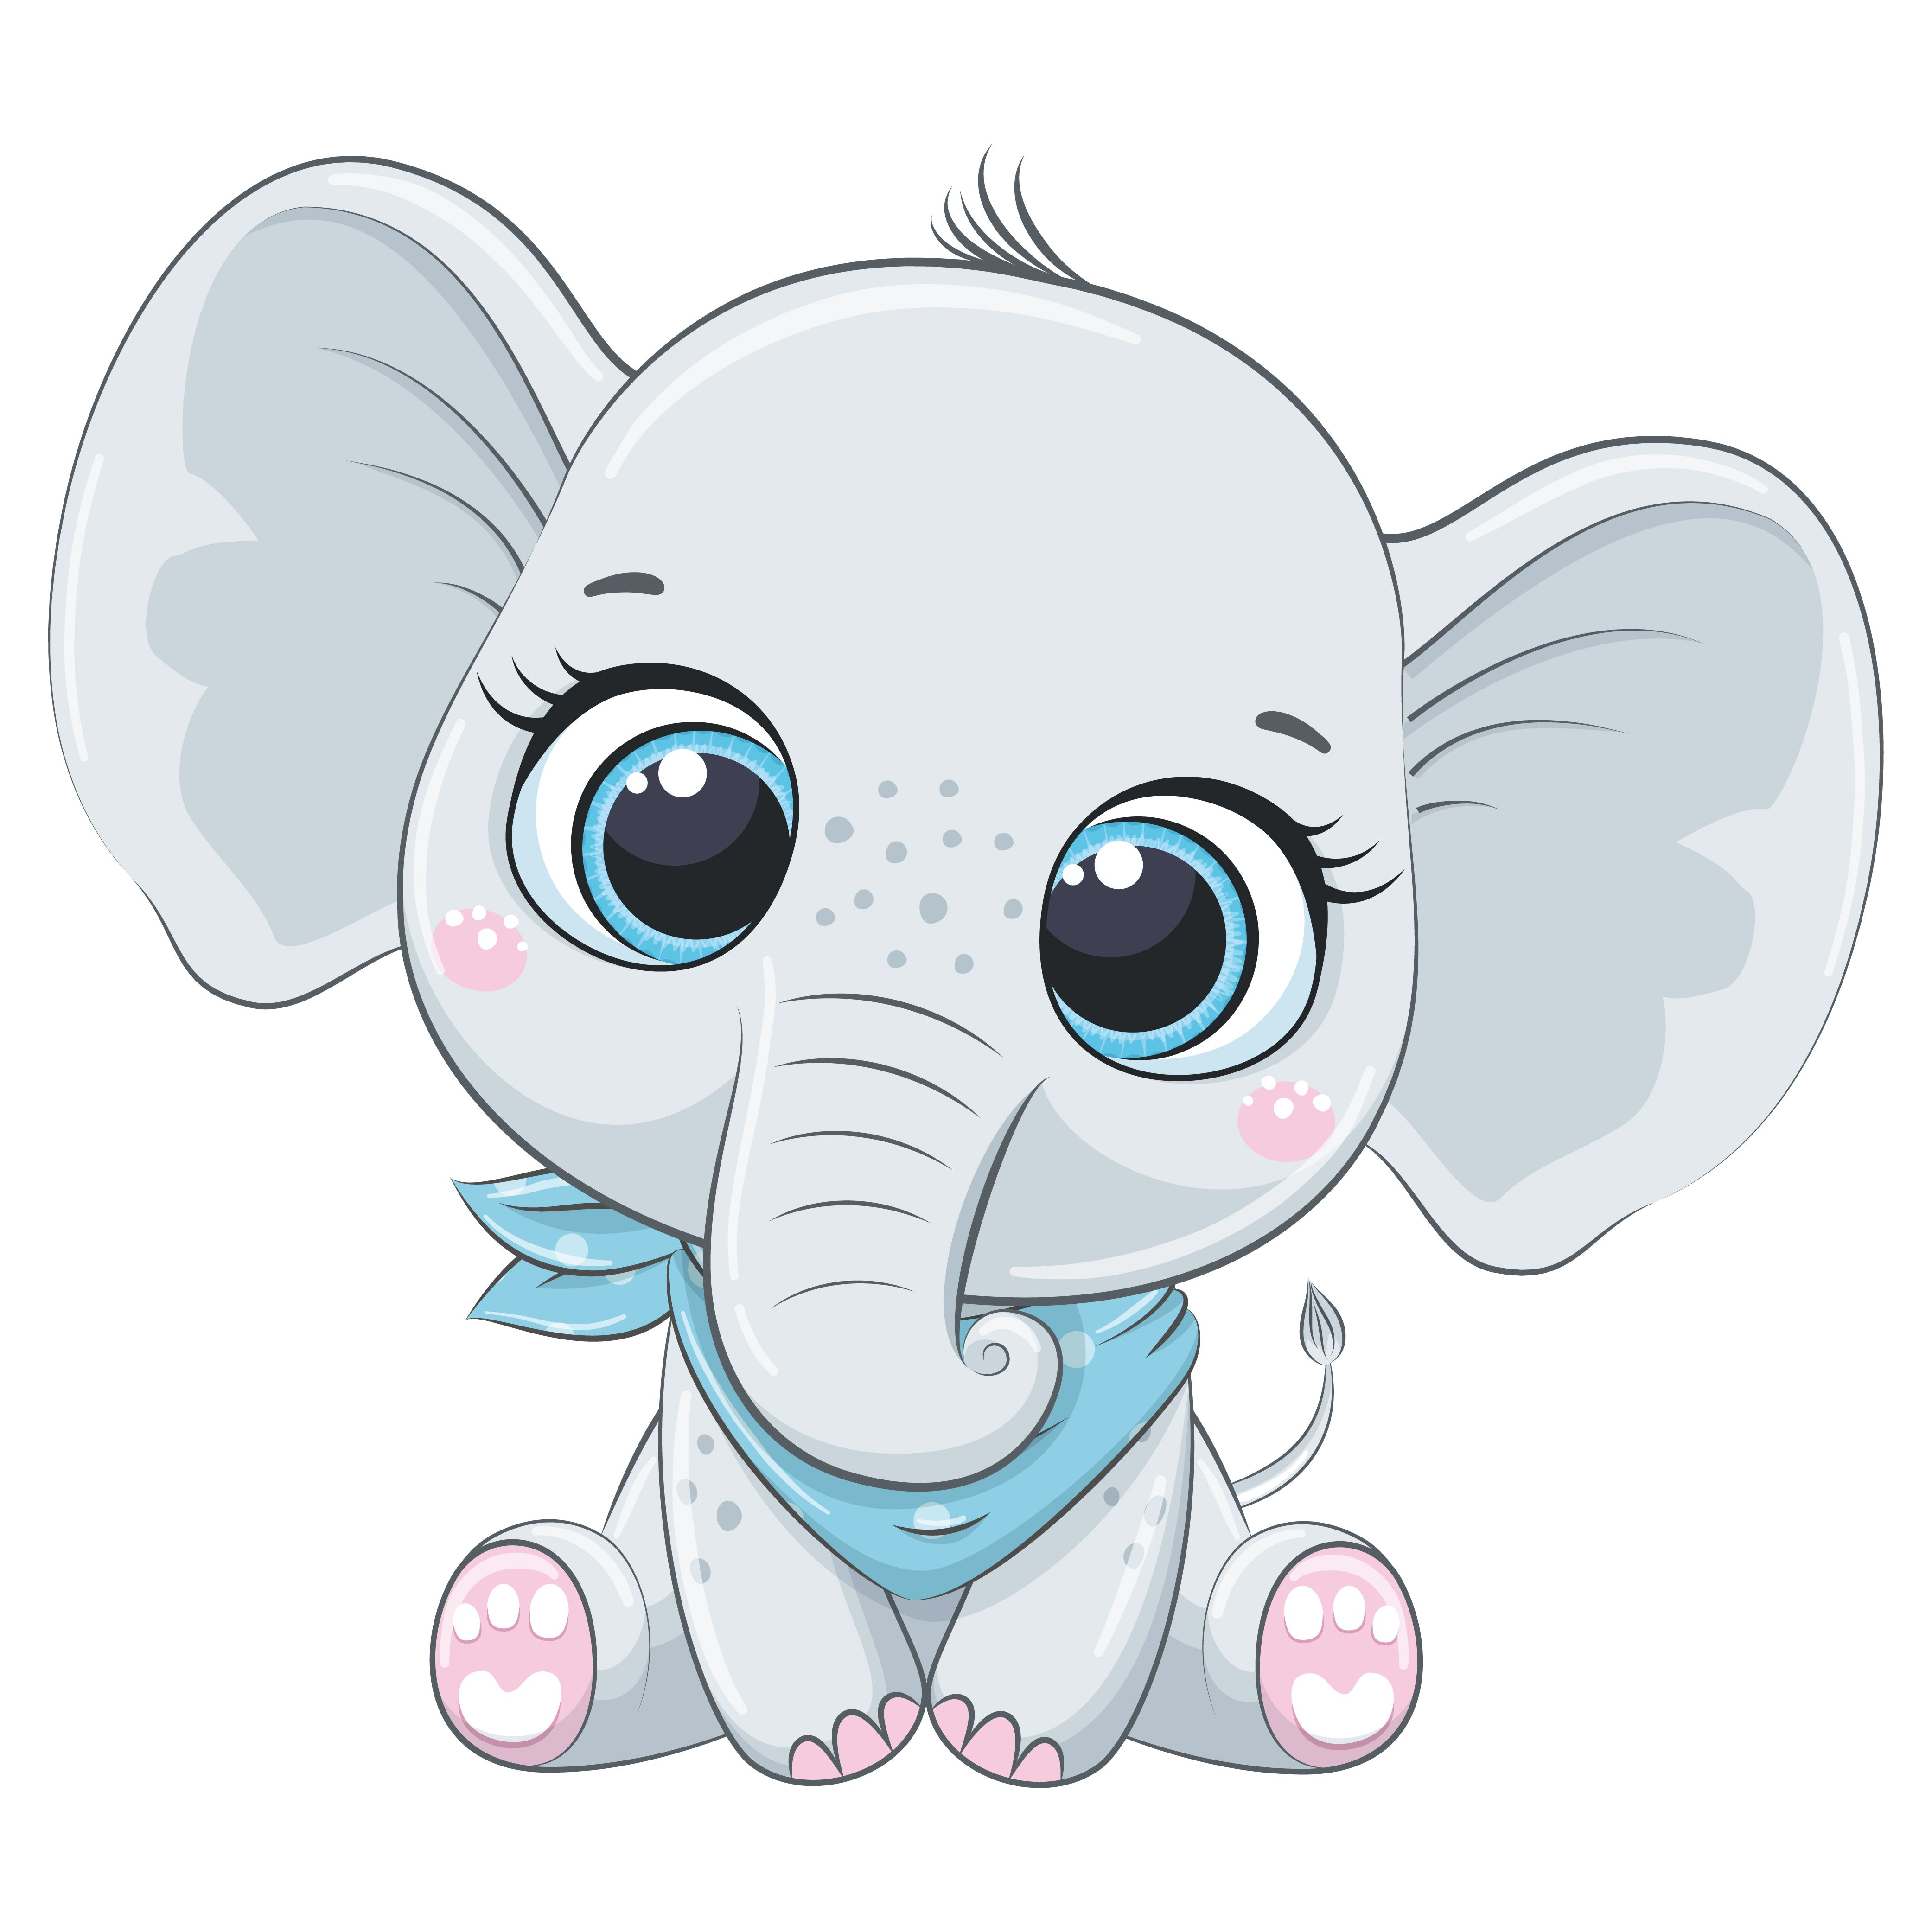 Elephant Baby Shower Clipart Png Jpeg Eps Elephant Baby Etsy In 2020 Baby Shower Clipart Baby Animal Drawings Baby Elephant 1,031 cartoon baby elephants products are offered for sale by suppliers on alibaba.com, of which stuffed & plush animal accounts for 3%, sculptures accounts for 1%, and artificial crafts accounts for 1%. elephant baby shower clipart png jpeg eps elephant baby etsy in 2020 baby shower clipart baby animal drawings baby elephant